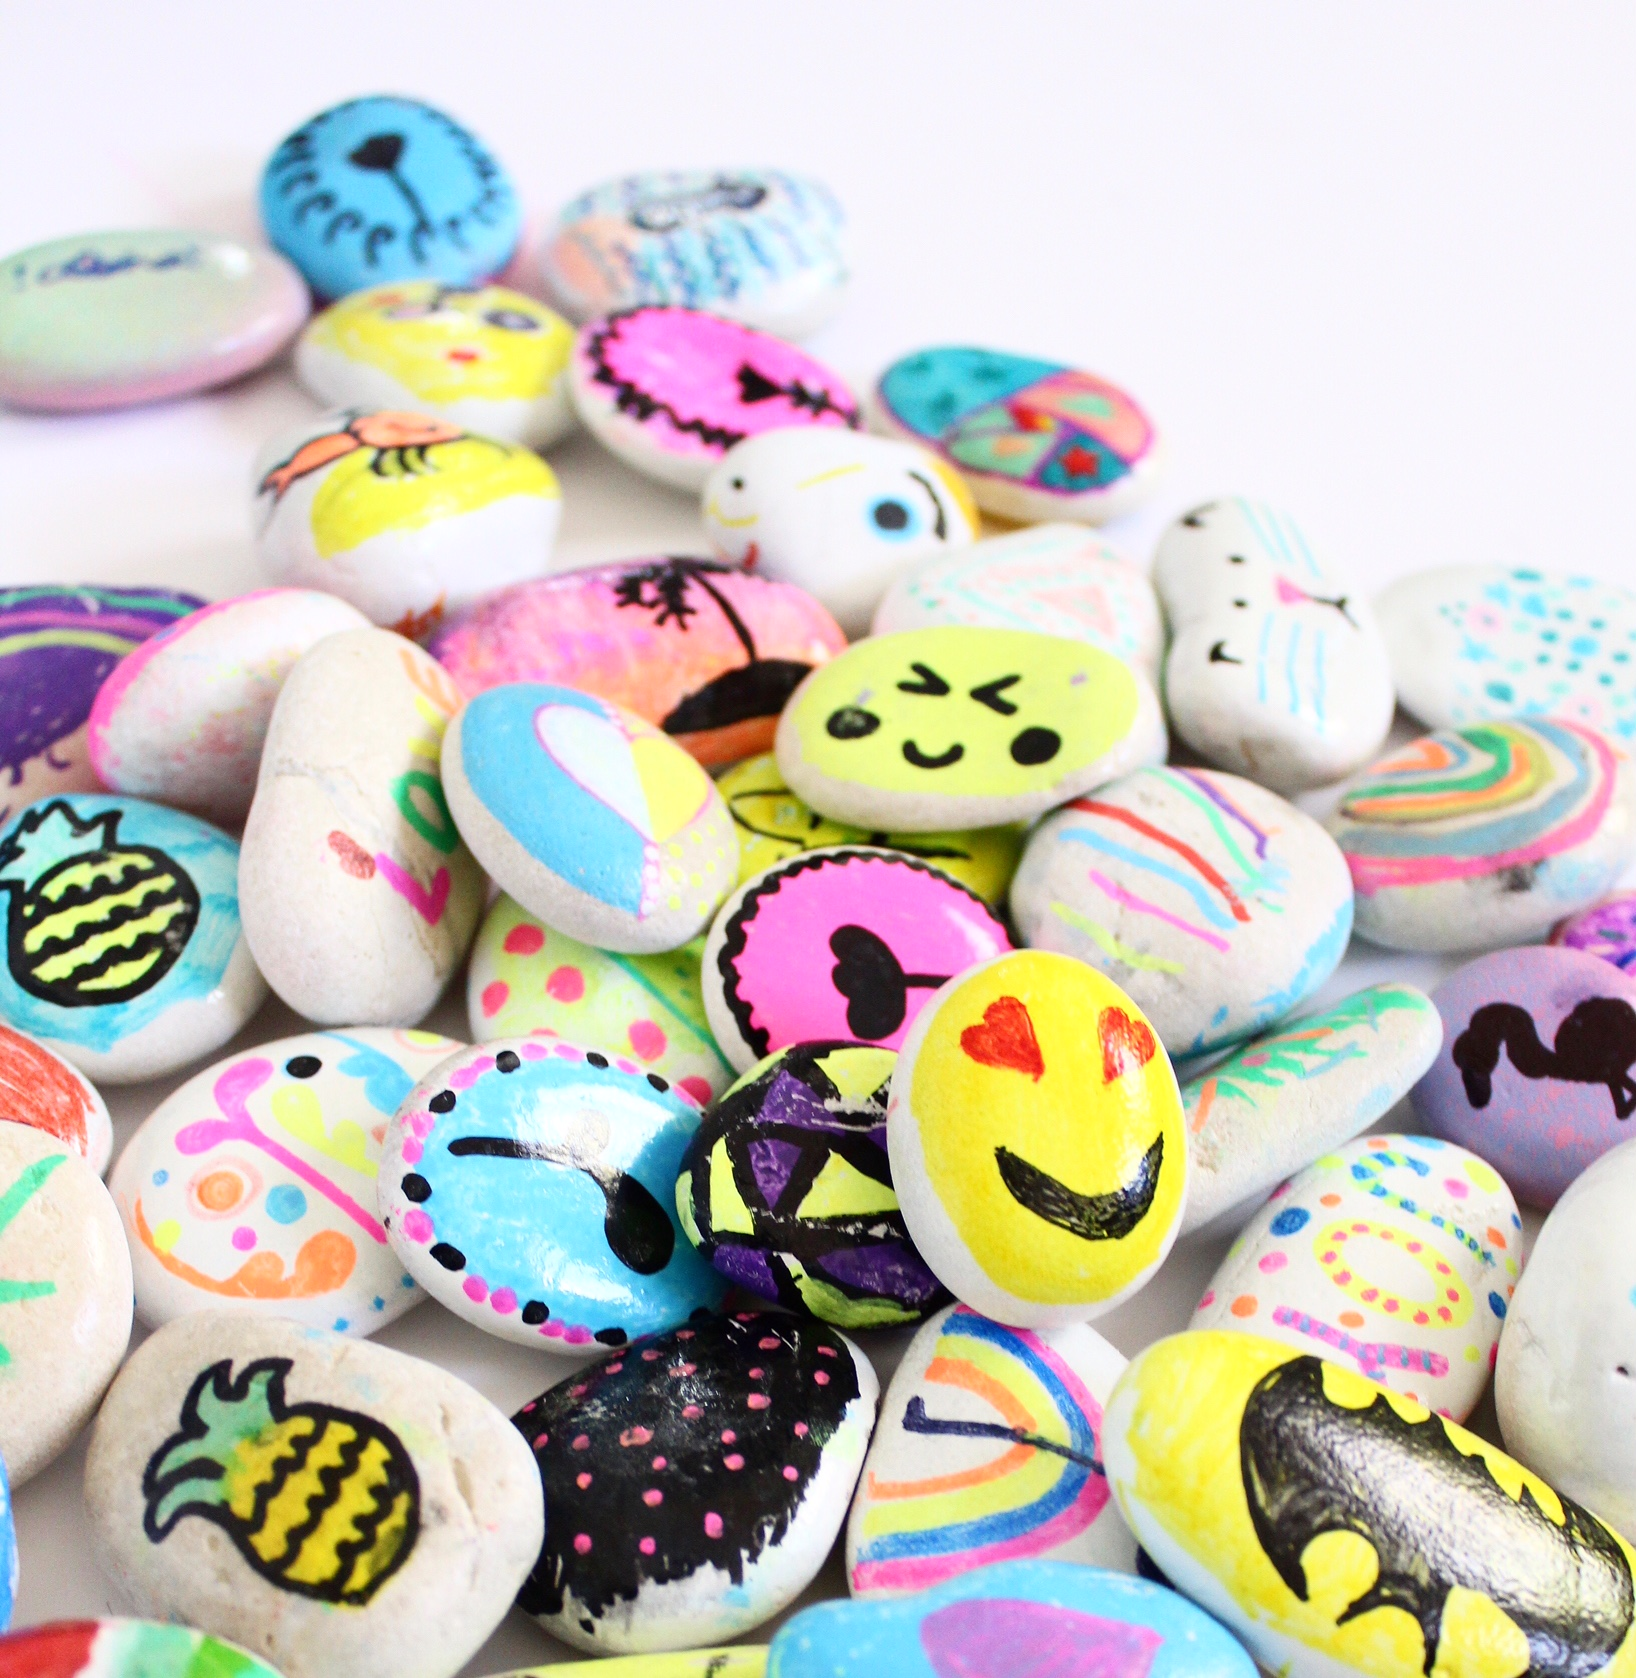 Rock Painting ideas for kids | toddler and kids crafts and activities, more on the blog